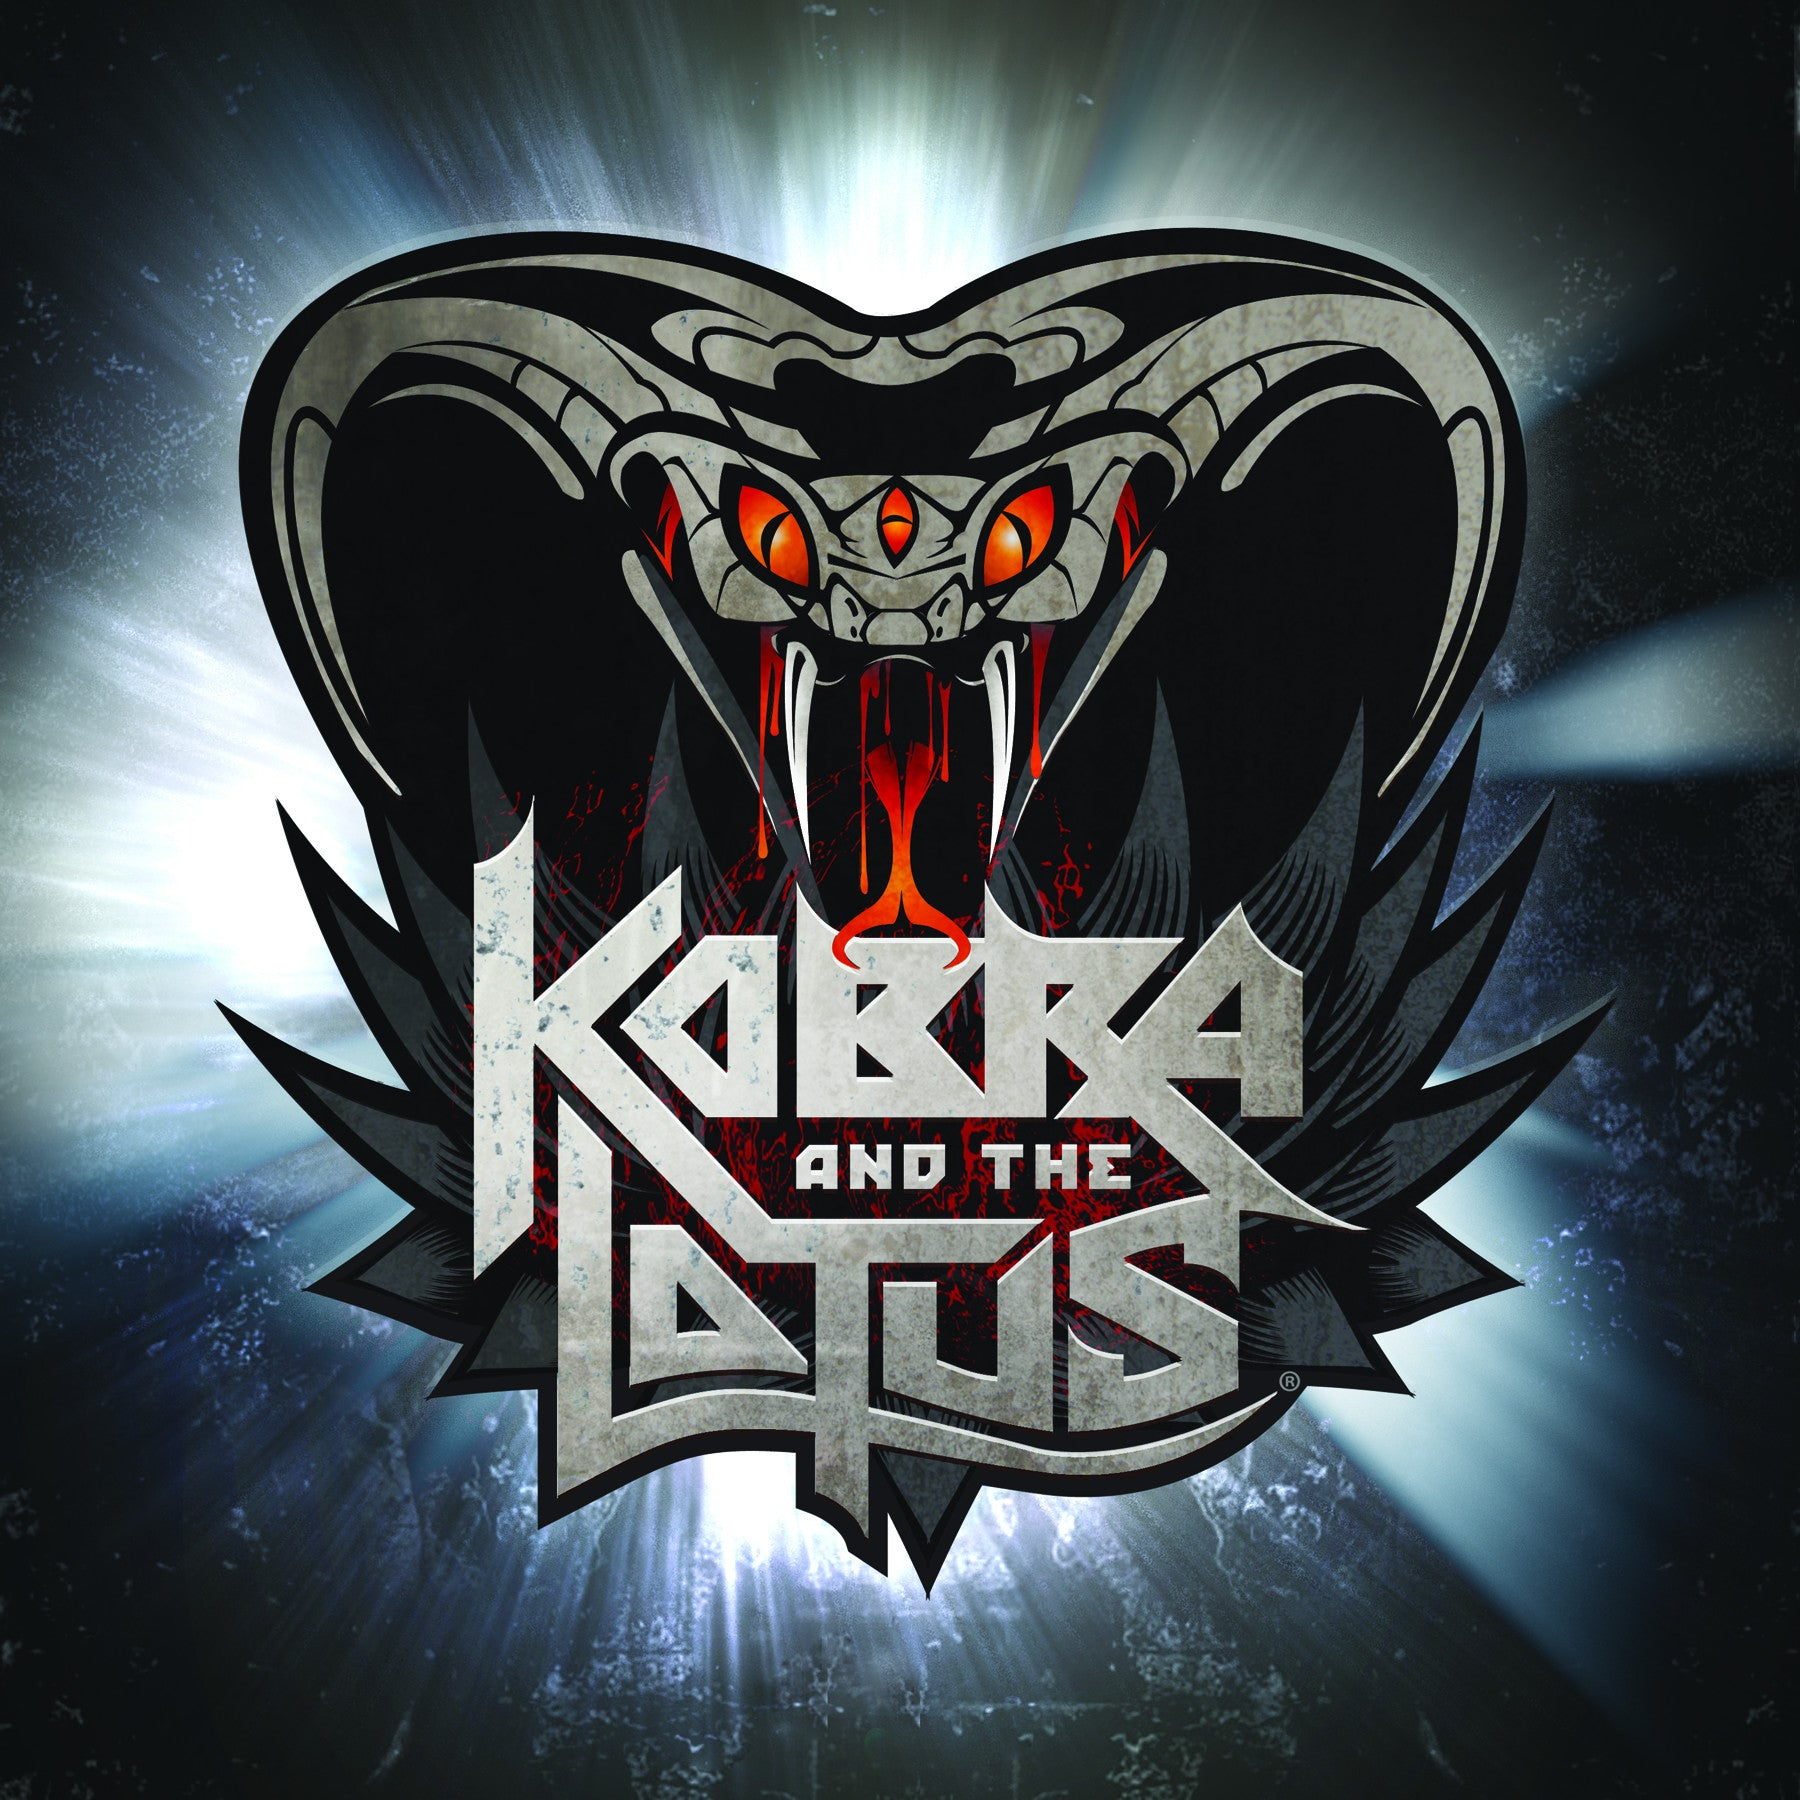 Limited Edition KOBRA AND THE LOTUS CD 2012 Release Autographed  by Kobra Paige and Jasio Kulakowski